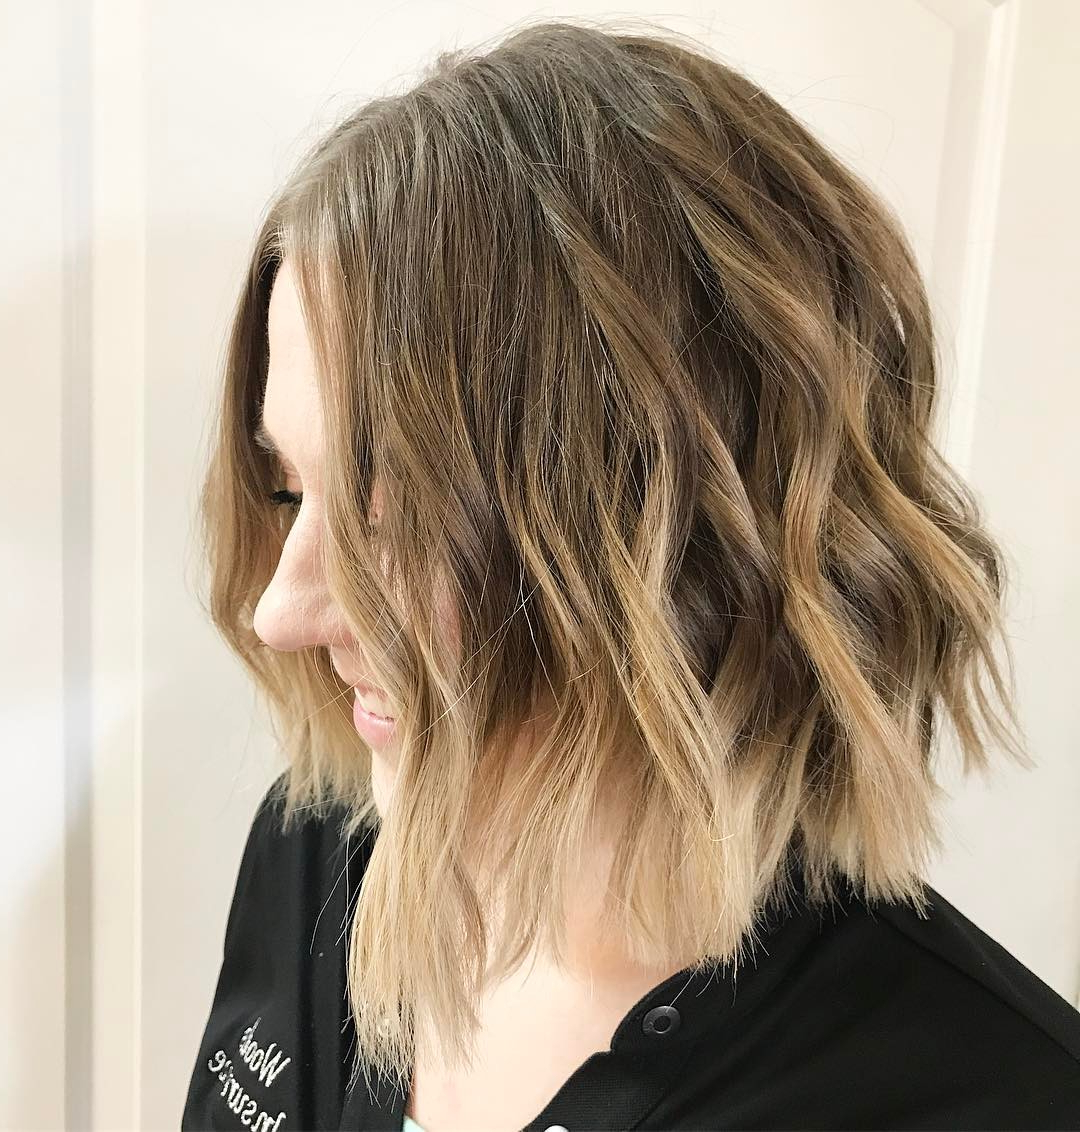 10 Beautiful Medium Bob Haircuts &edgy Looks: Shoulder Length Pertaining To Short Bob Hairstyles With Long Edgy Layers (View 1 of 20)